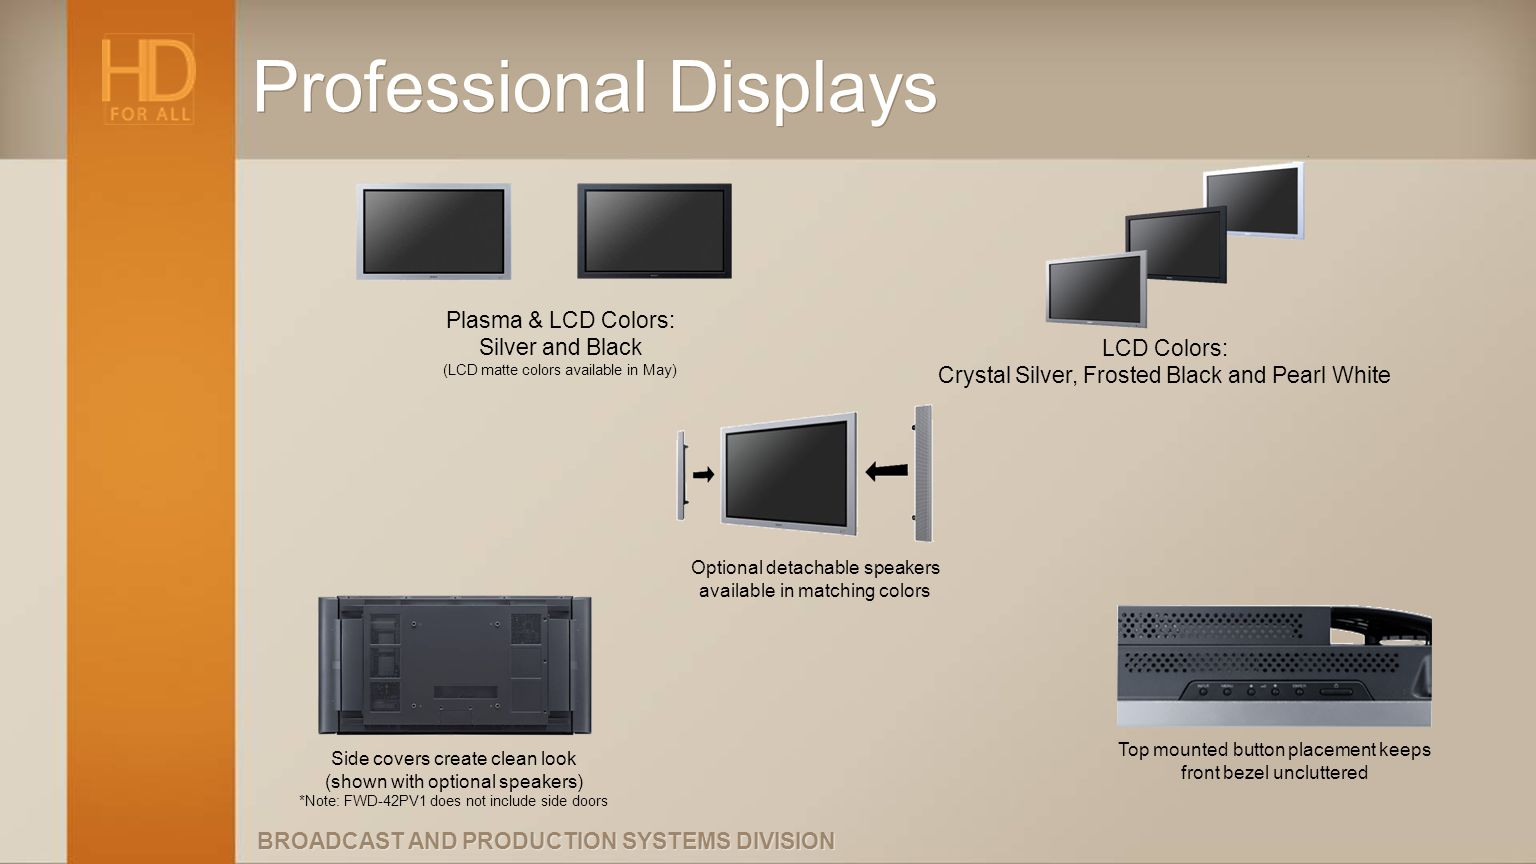 Professional Displays